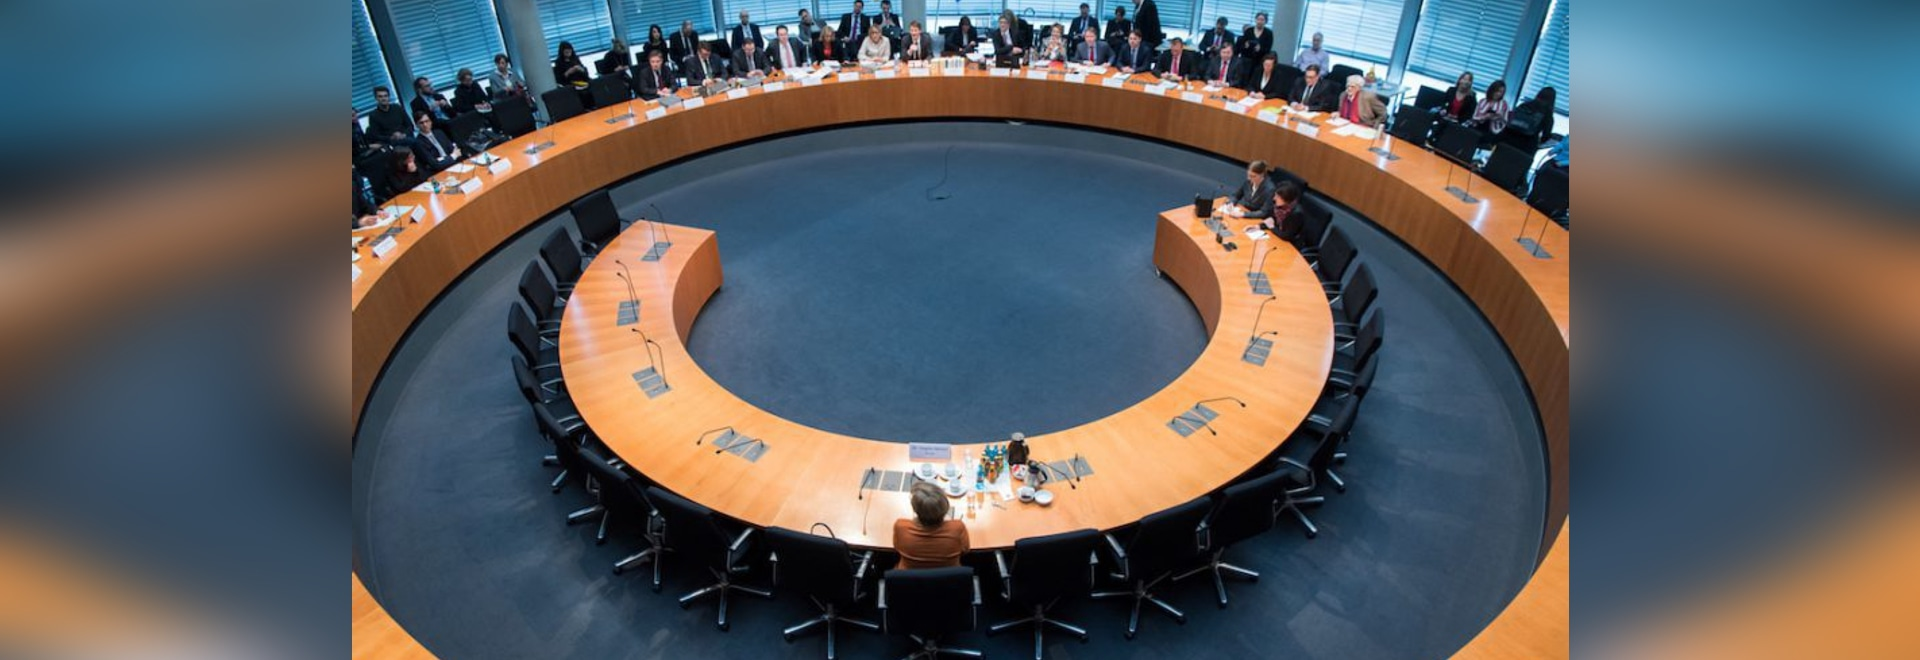 In the eye of the storm: Germany's chancellor on Wilkhahn's FS chair